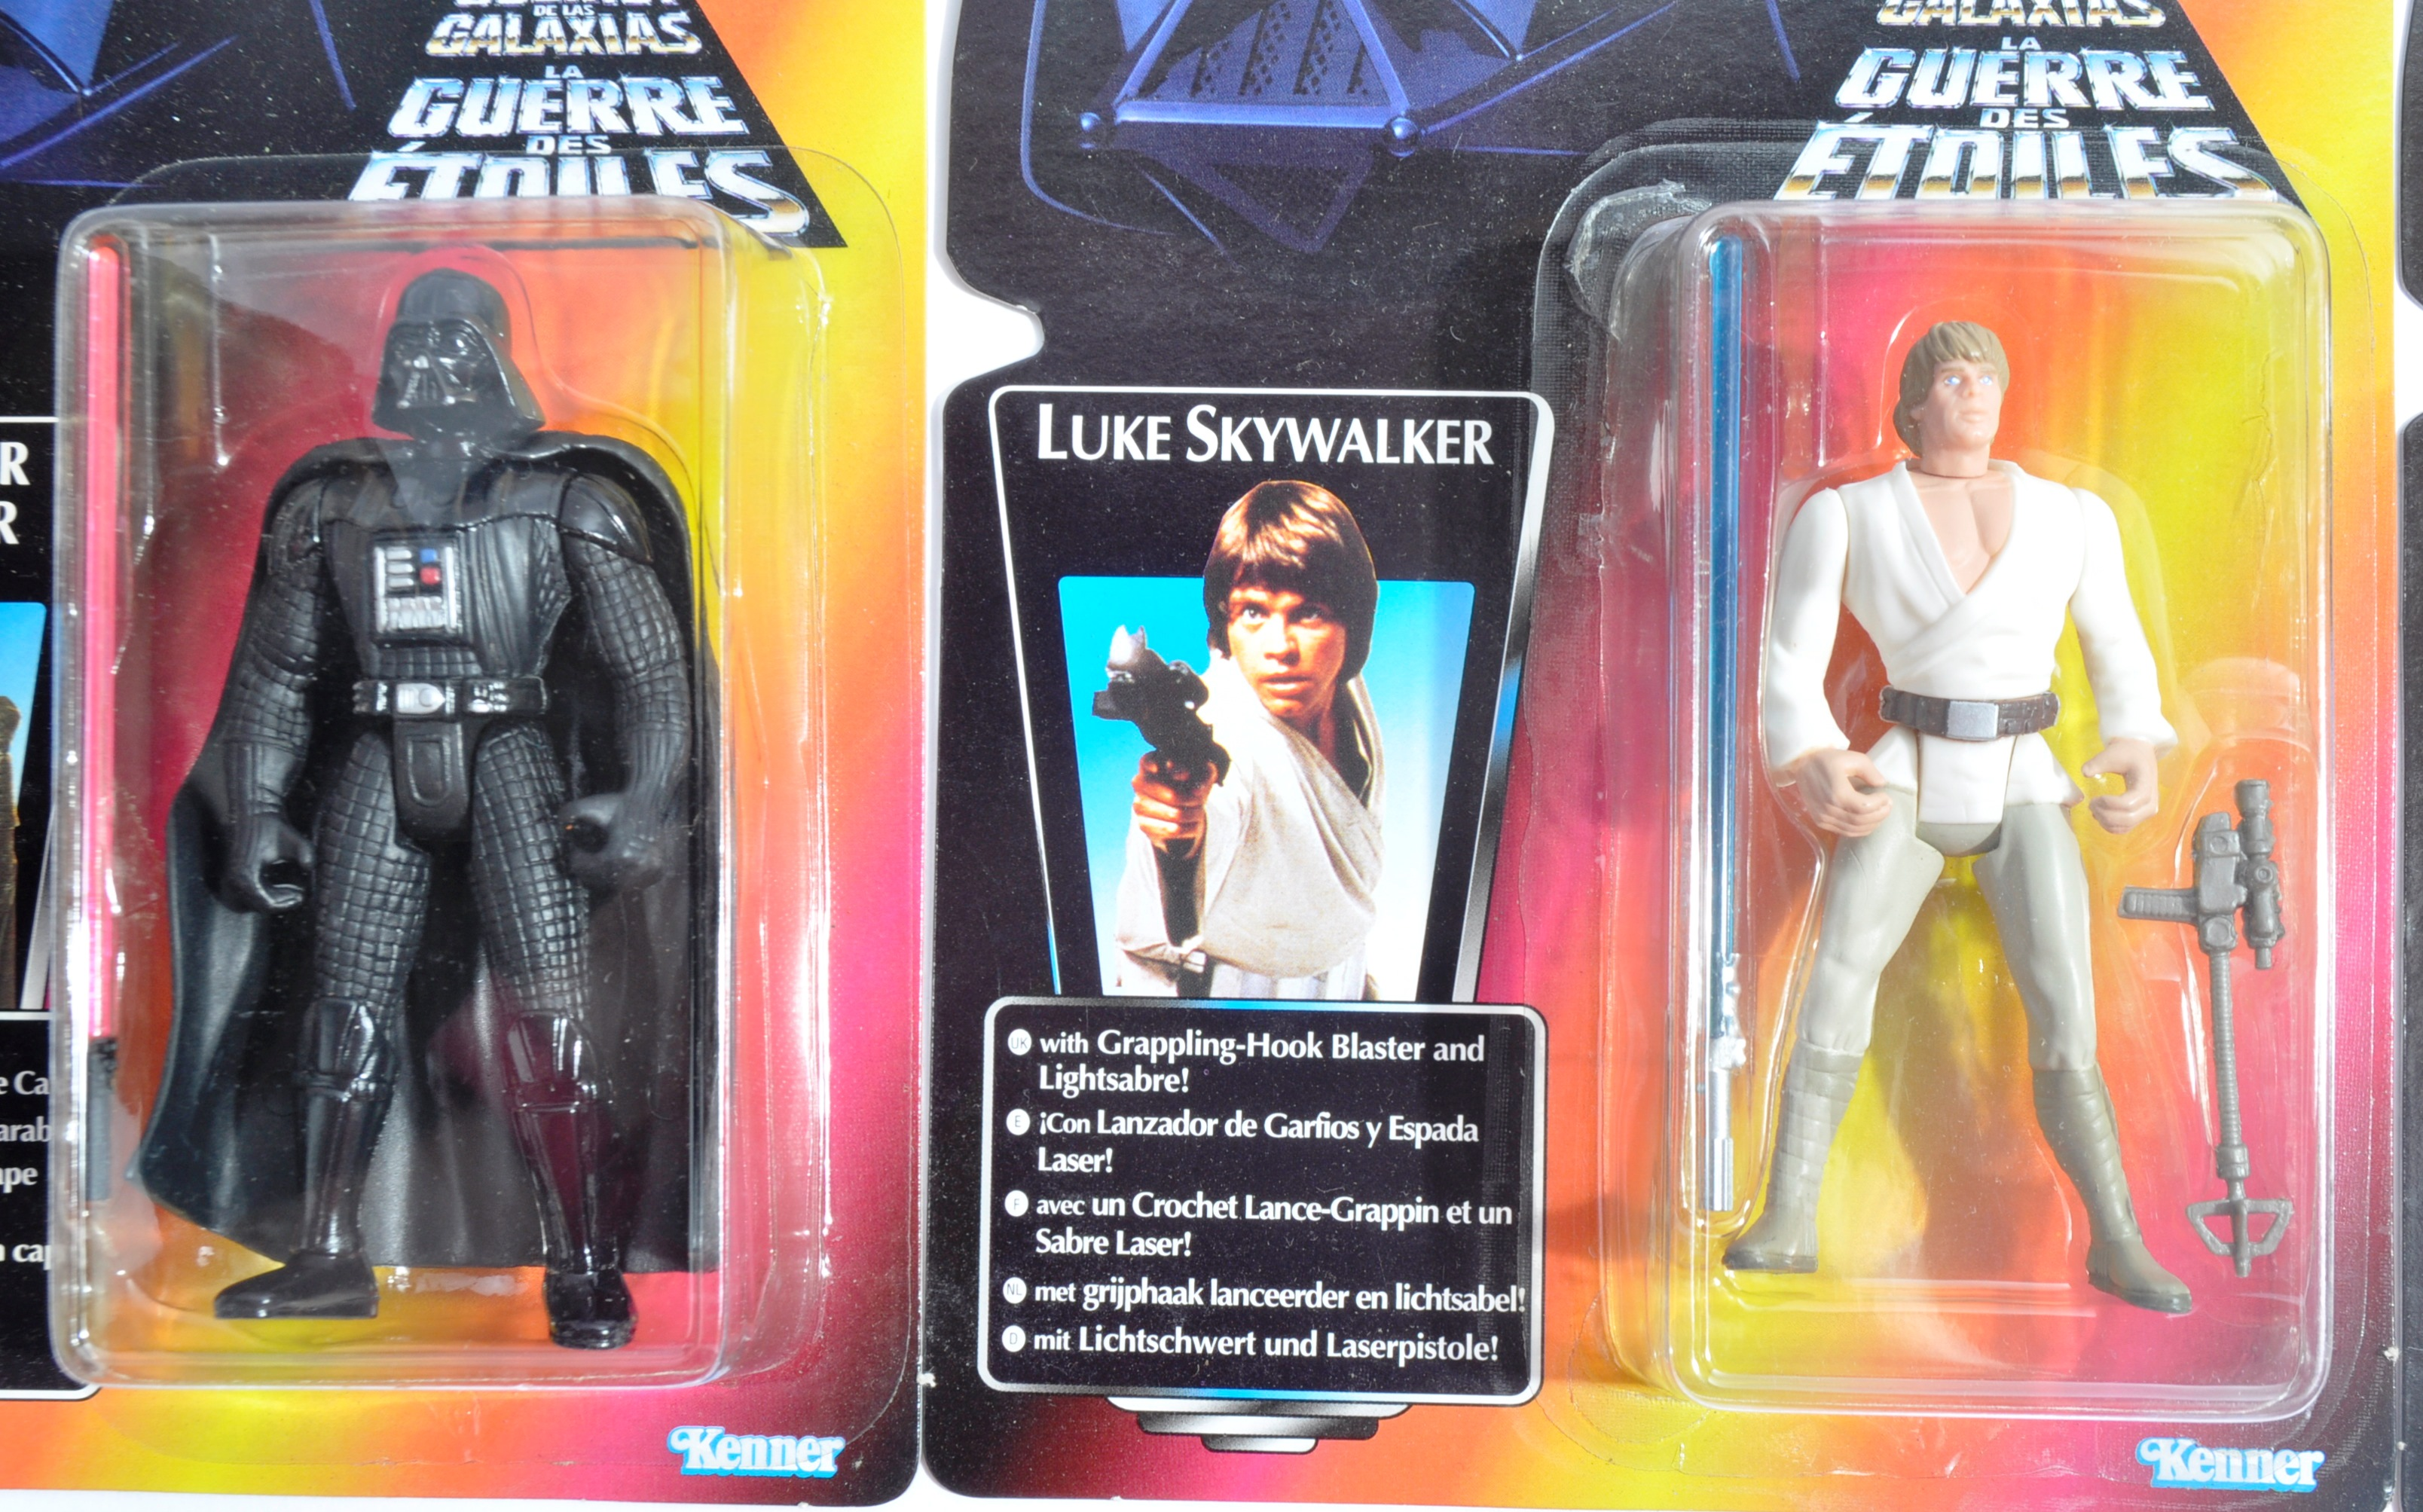 STAR WARS - COLLECTION OF KENNER CARDED ACTION FIGURES - Image 3 of 6